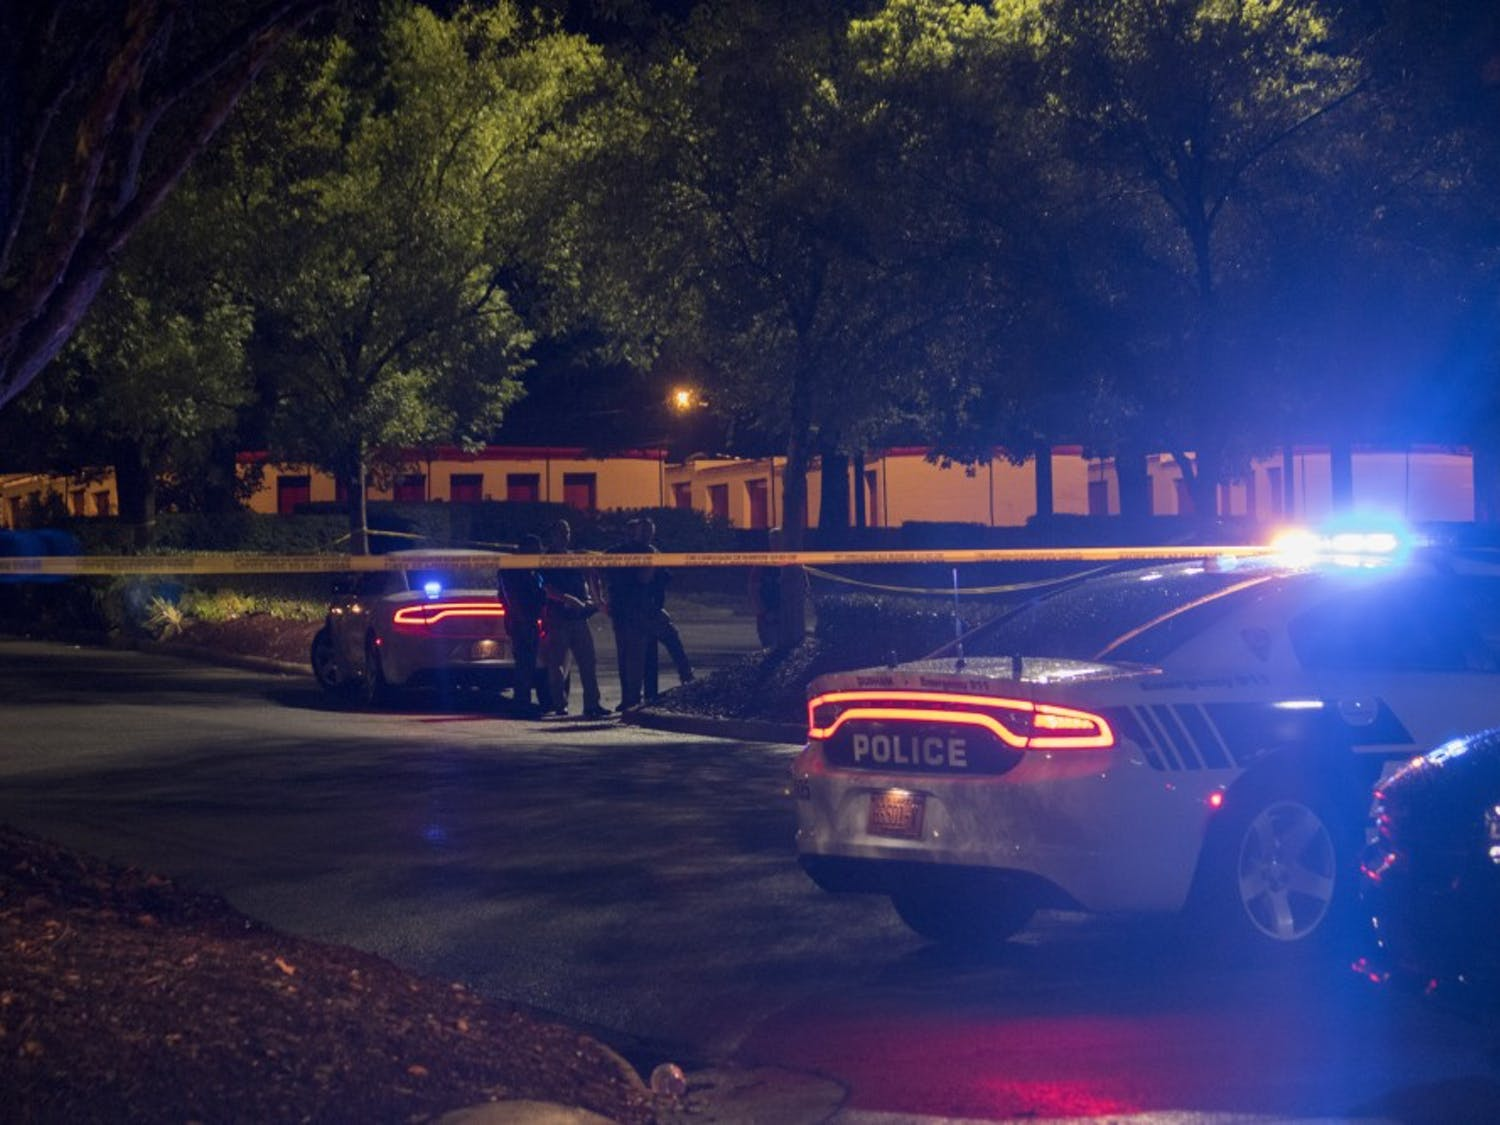 A man was shot shortly after 8 PM on Wednesday evening at the New Hope Commons shopping center. Durham Police Department officers were involved in the shooting.